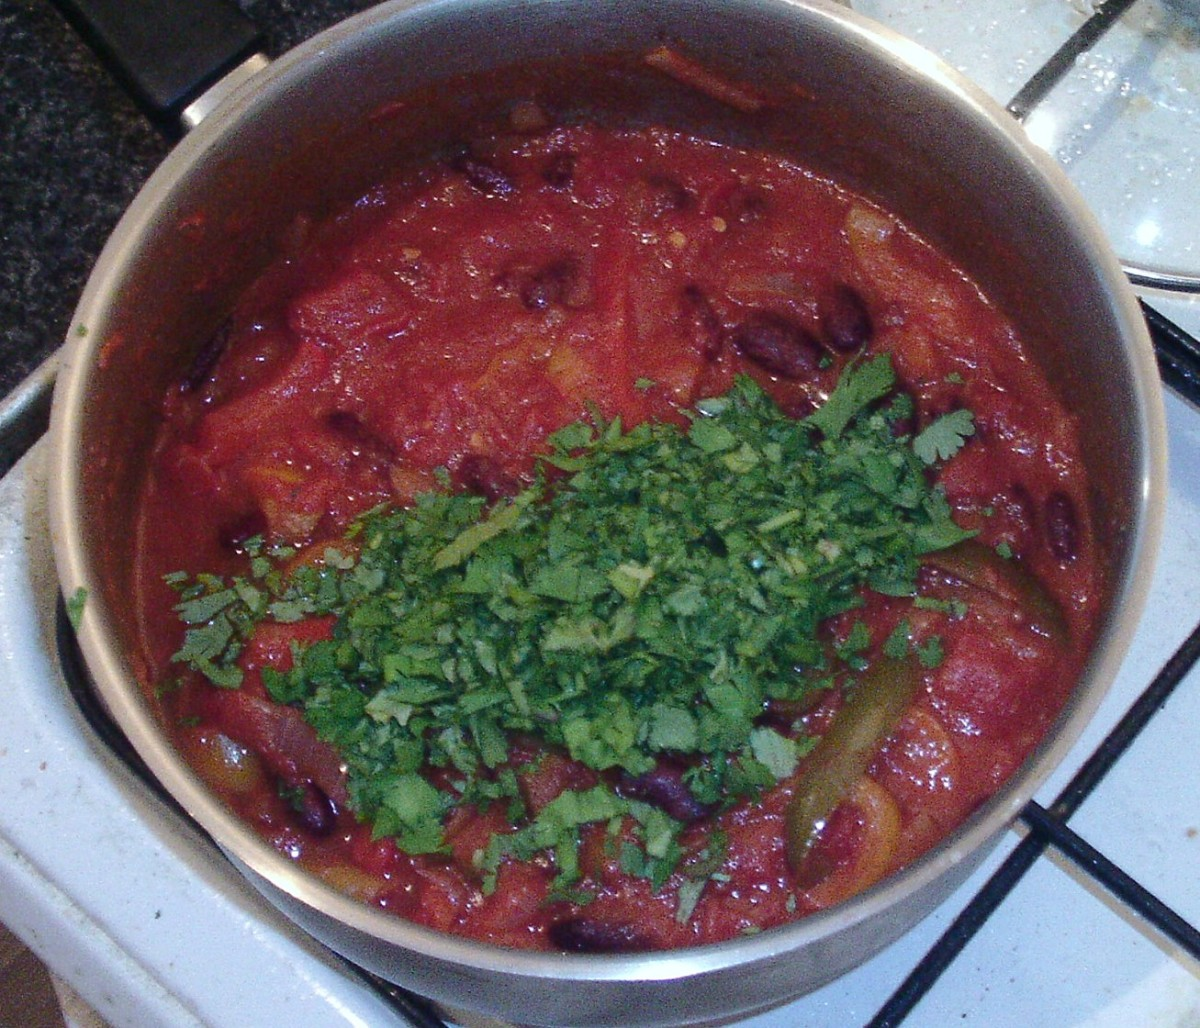 Coriander leaf/cilantro is added to chilli at last minute